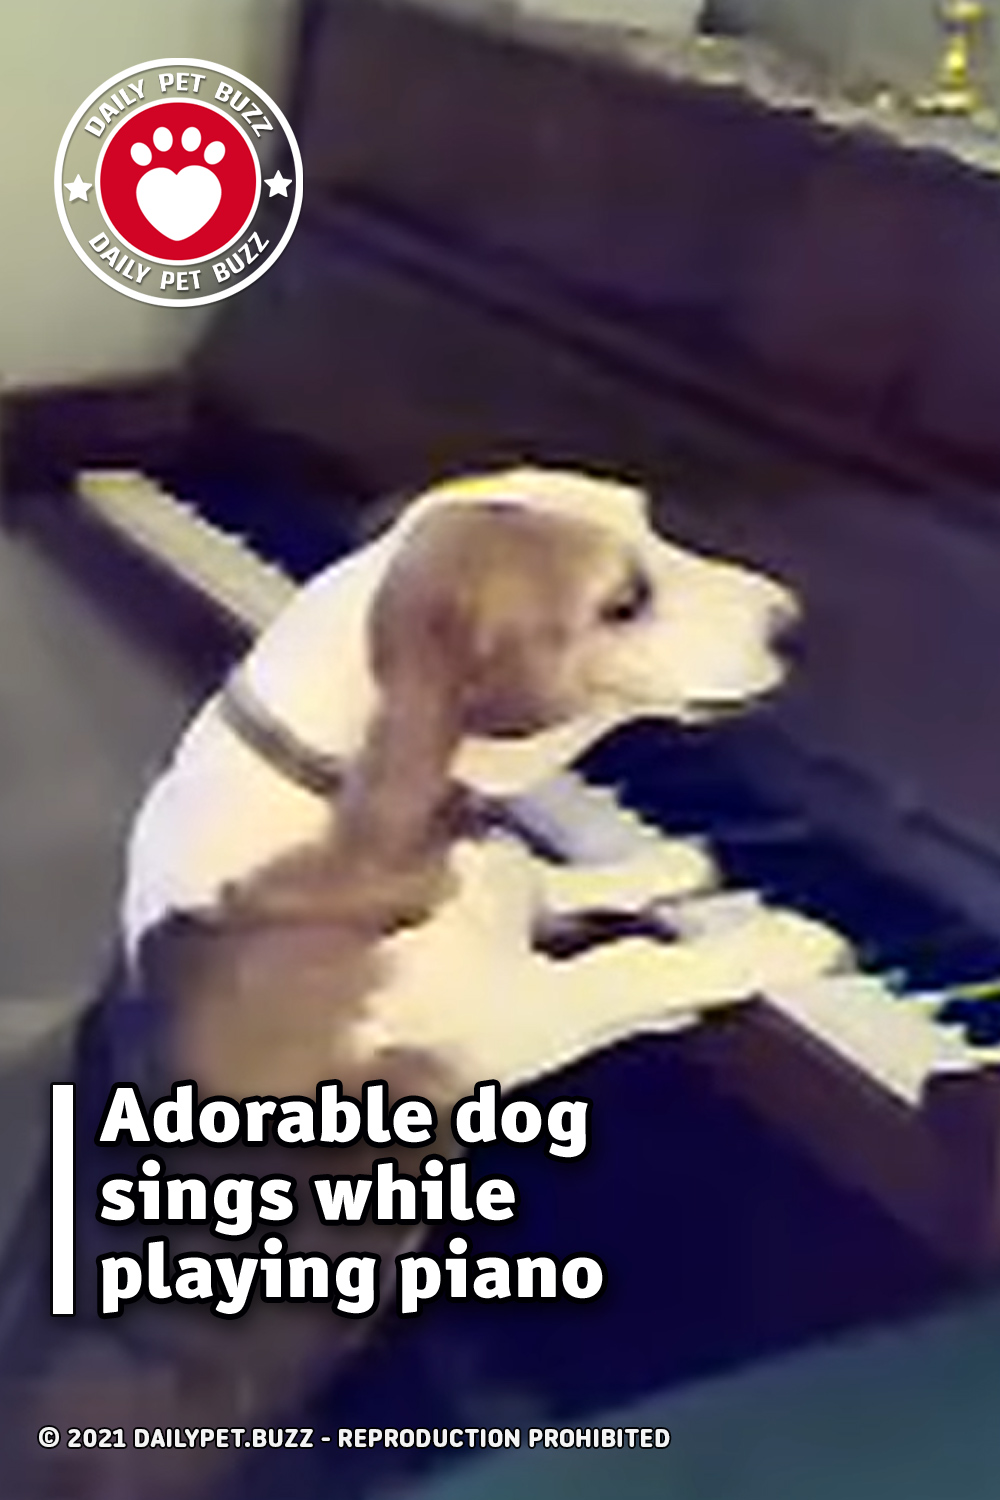 Adorable dog sings while playing piano